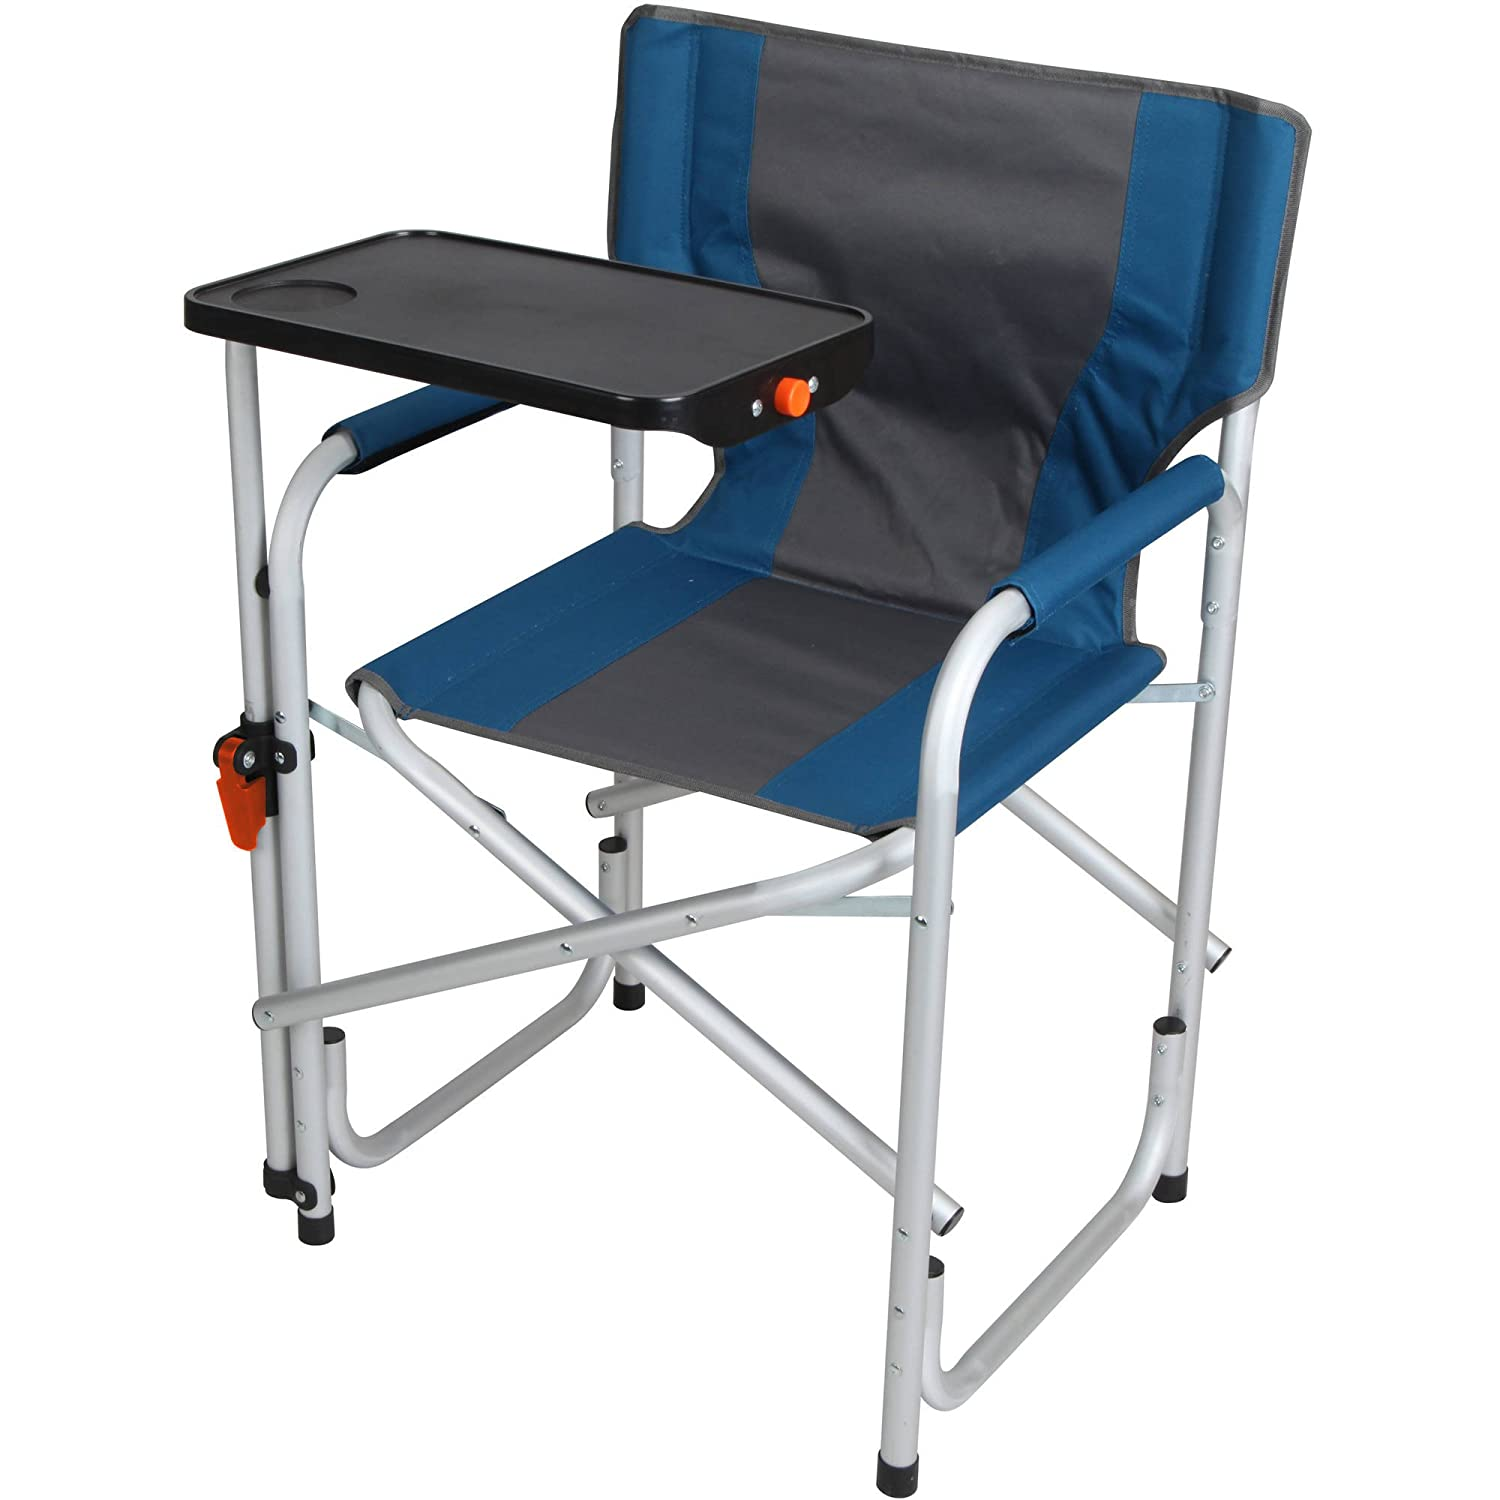 Amazon.com : Ozark Trail Aluminum Directoru0027s Chair With Swivel Desk, Blue :  Sports U0026 Outdoors